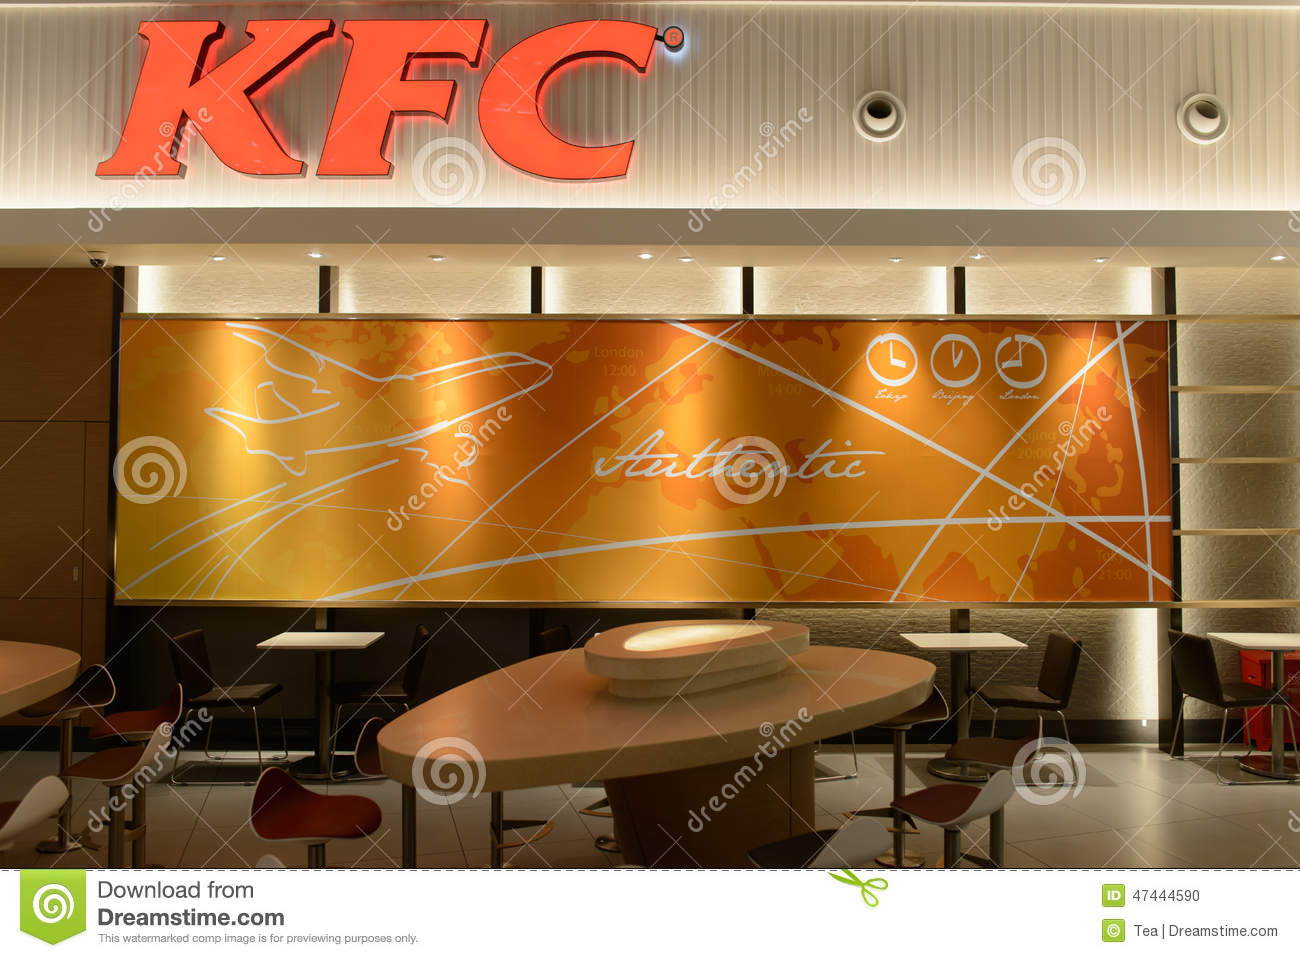 American customer satisfaction index: KFC restaurants in the U.S. 2000-2018